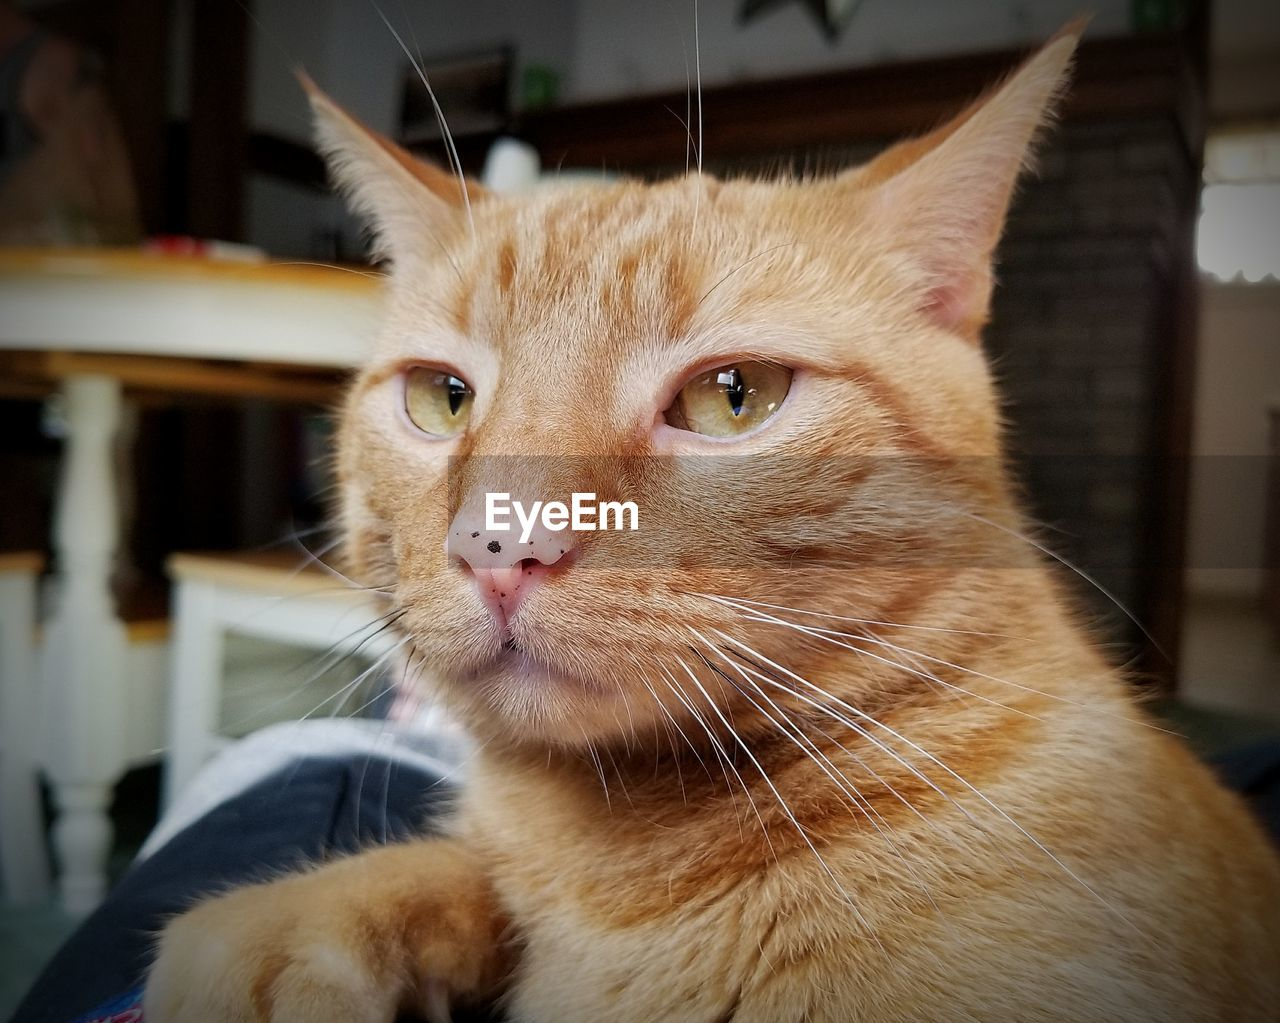 cat, domestic, feline, domestic cat, domestic animals, pets, animal themes, mammal, animal, vertebrate, one animal, whisker, close-up, focus on foreground, animal body part, portrait, animal head, looking at camera, no people, indoors, ginger cat, animal eye, tabby, snout